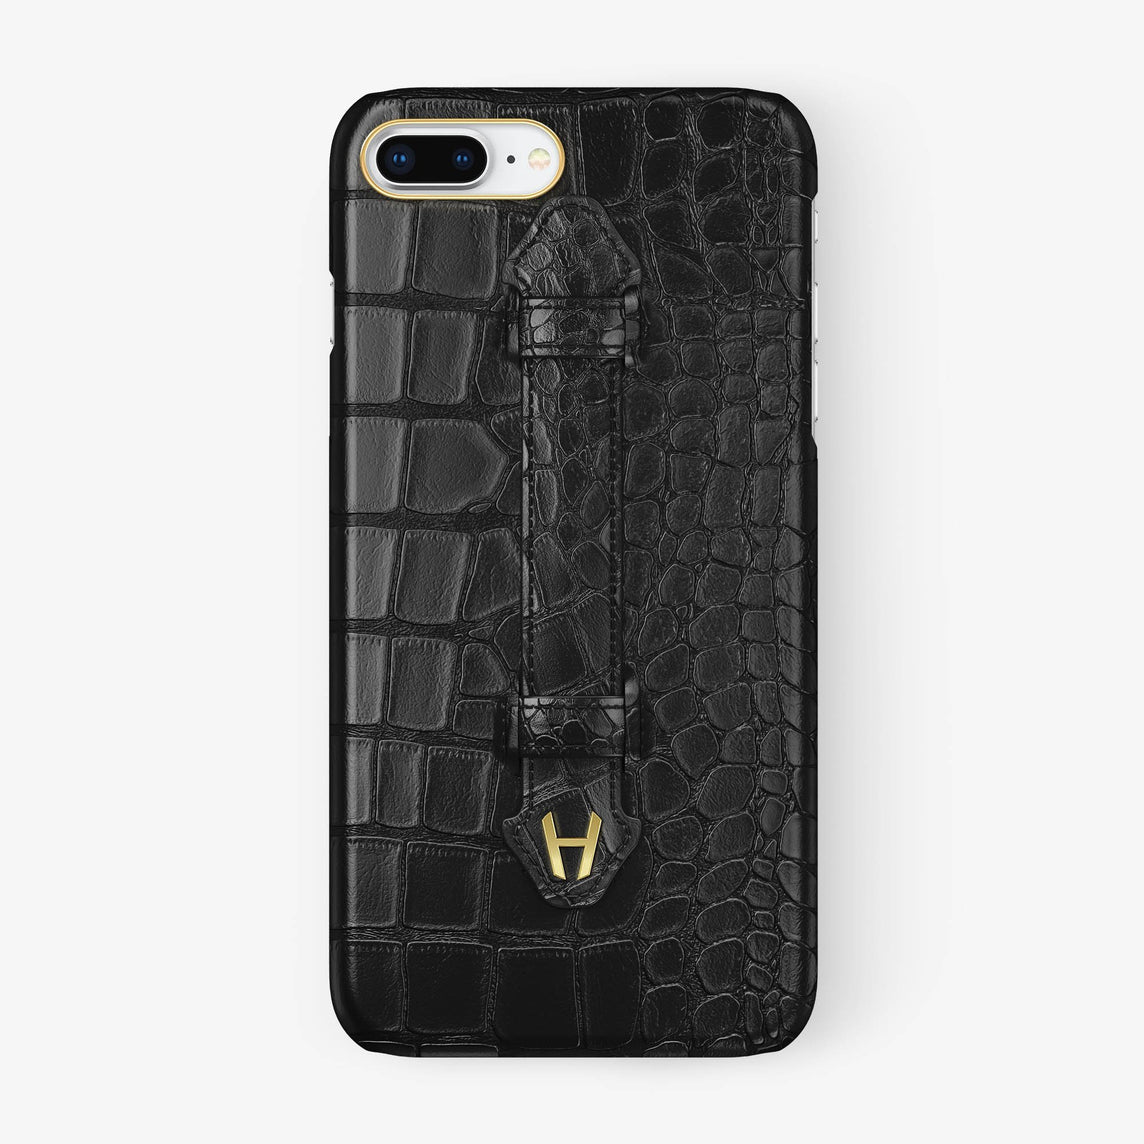 Black Alligator iPhone Finger Case for iPhone 7/8 Plus finishing yellow gold - Hadoro Luxury Cases